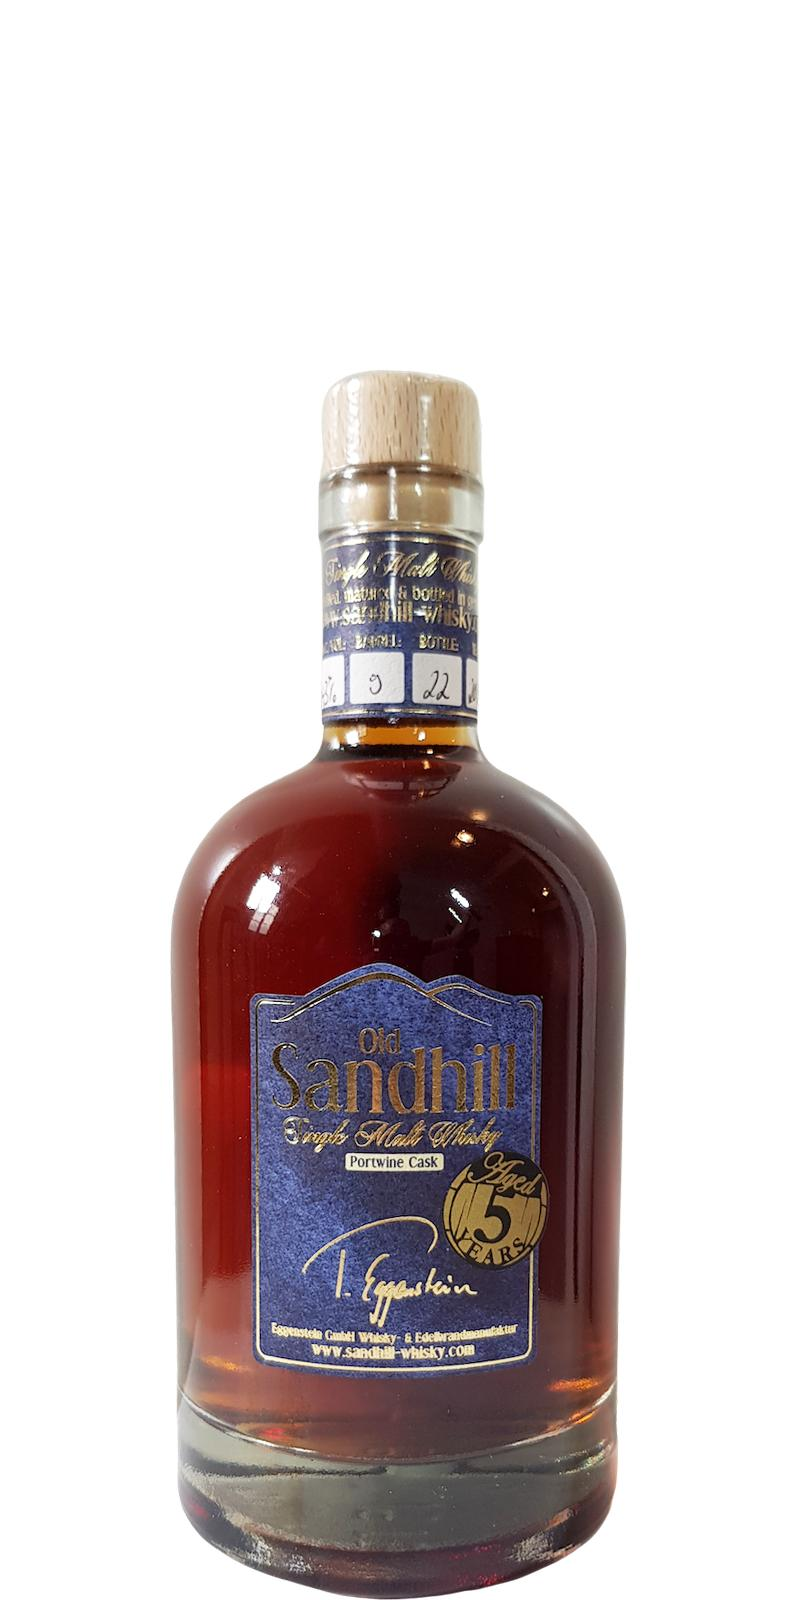 Old Sandhill 05-year-old